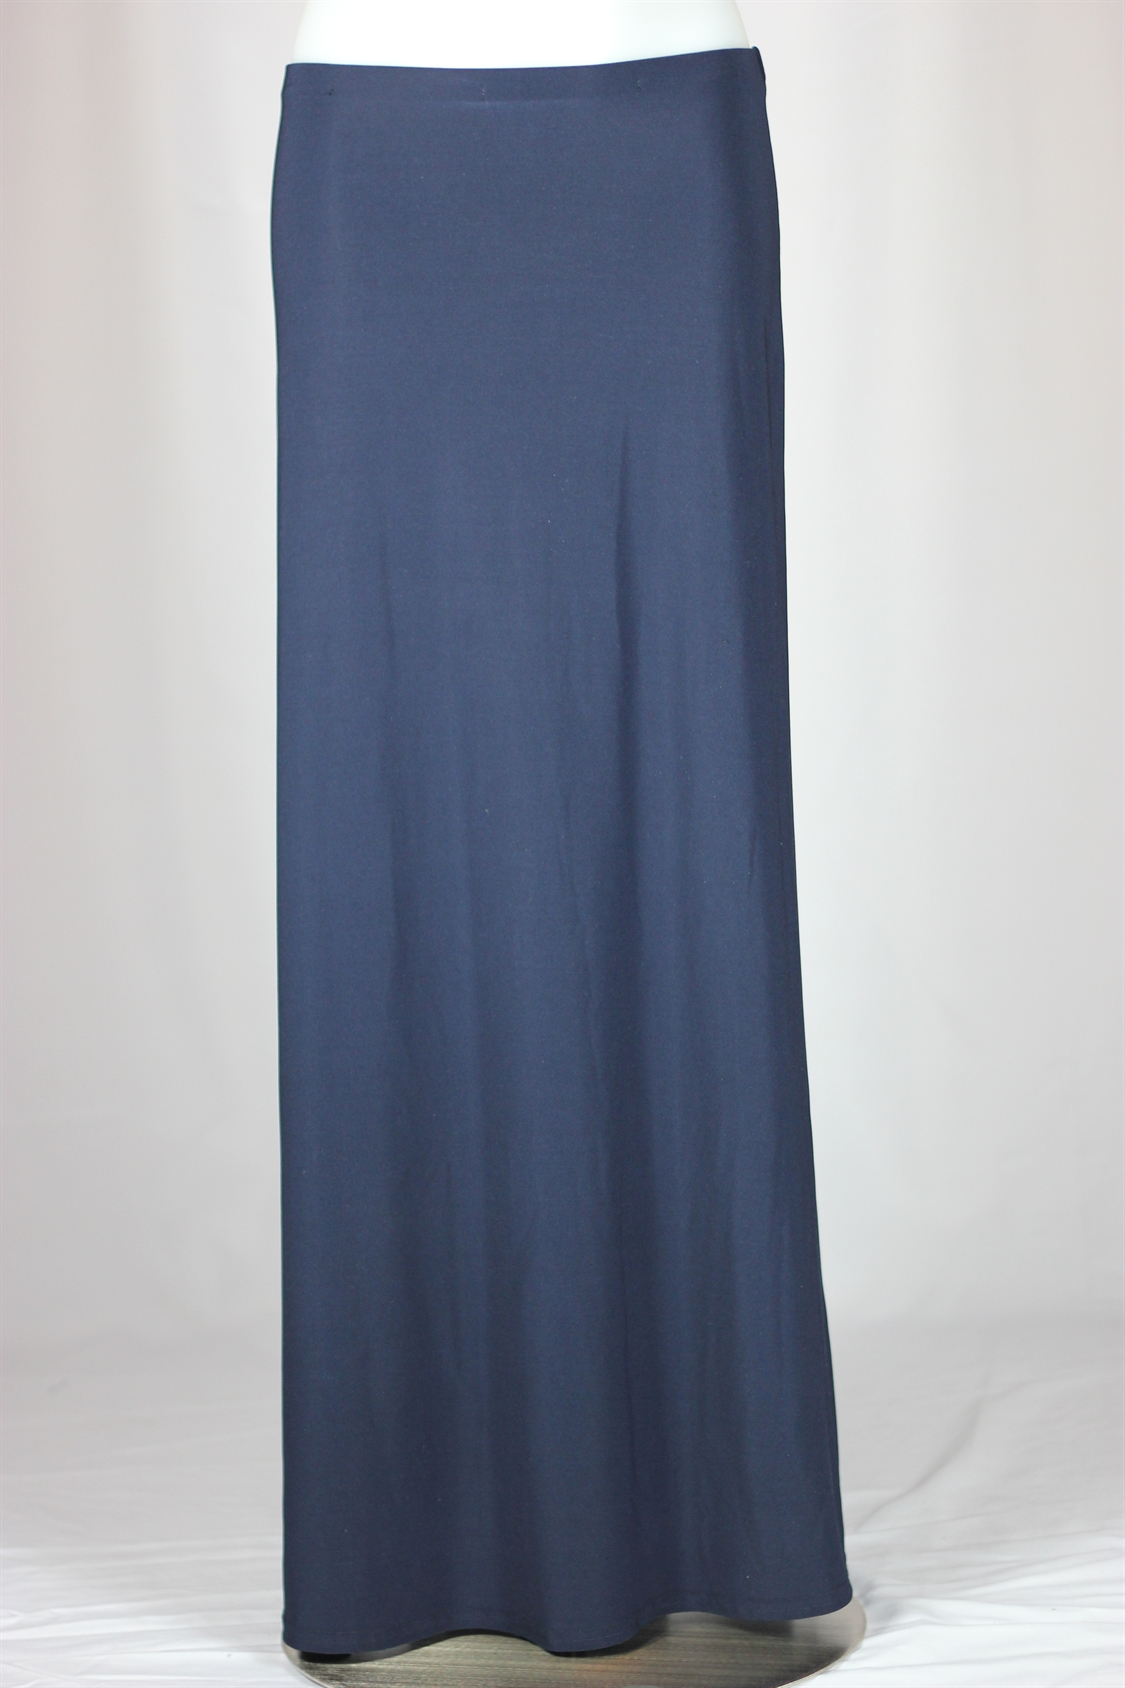 Navy Long Flowing Skirt, Sizes 0-16